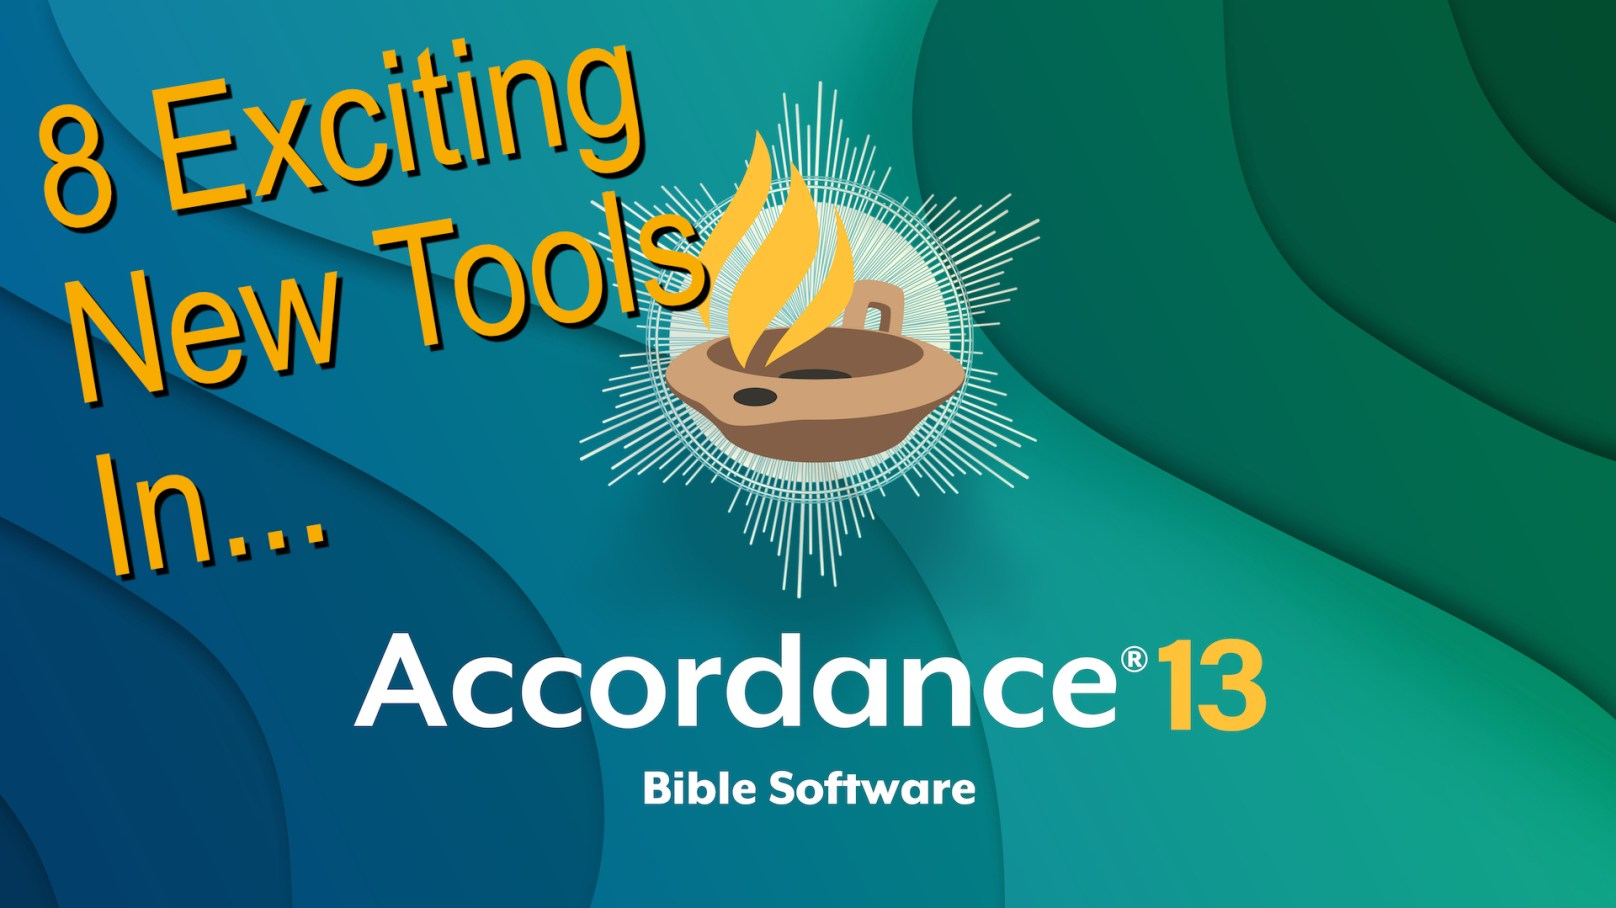 8-exciting-new-tools-in-accordance-13.jp